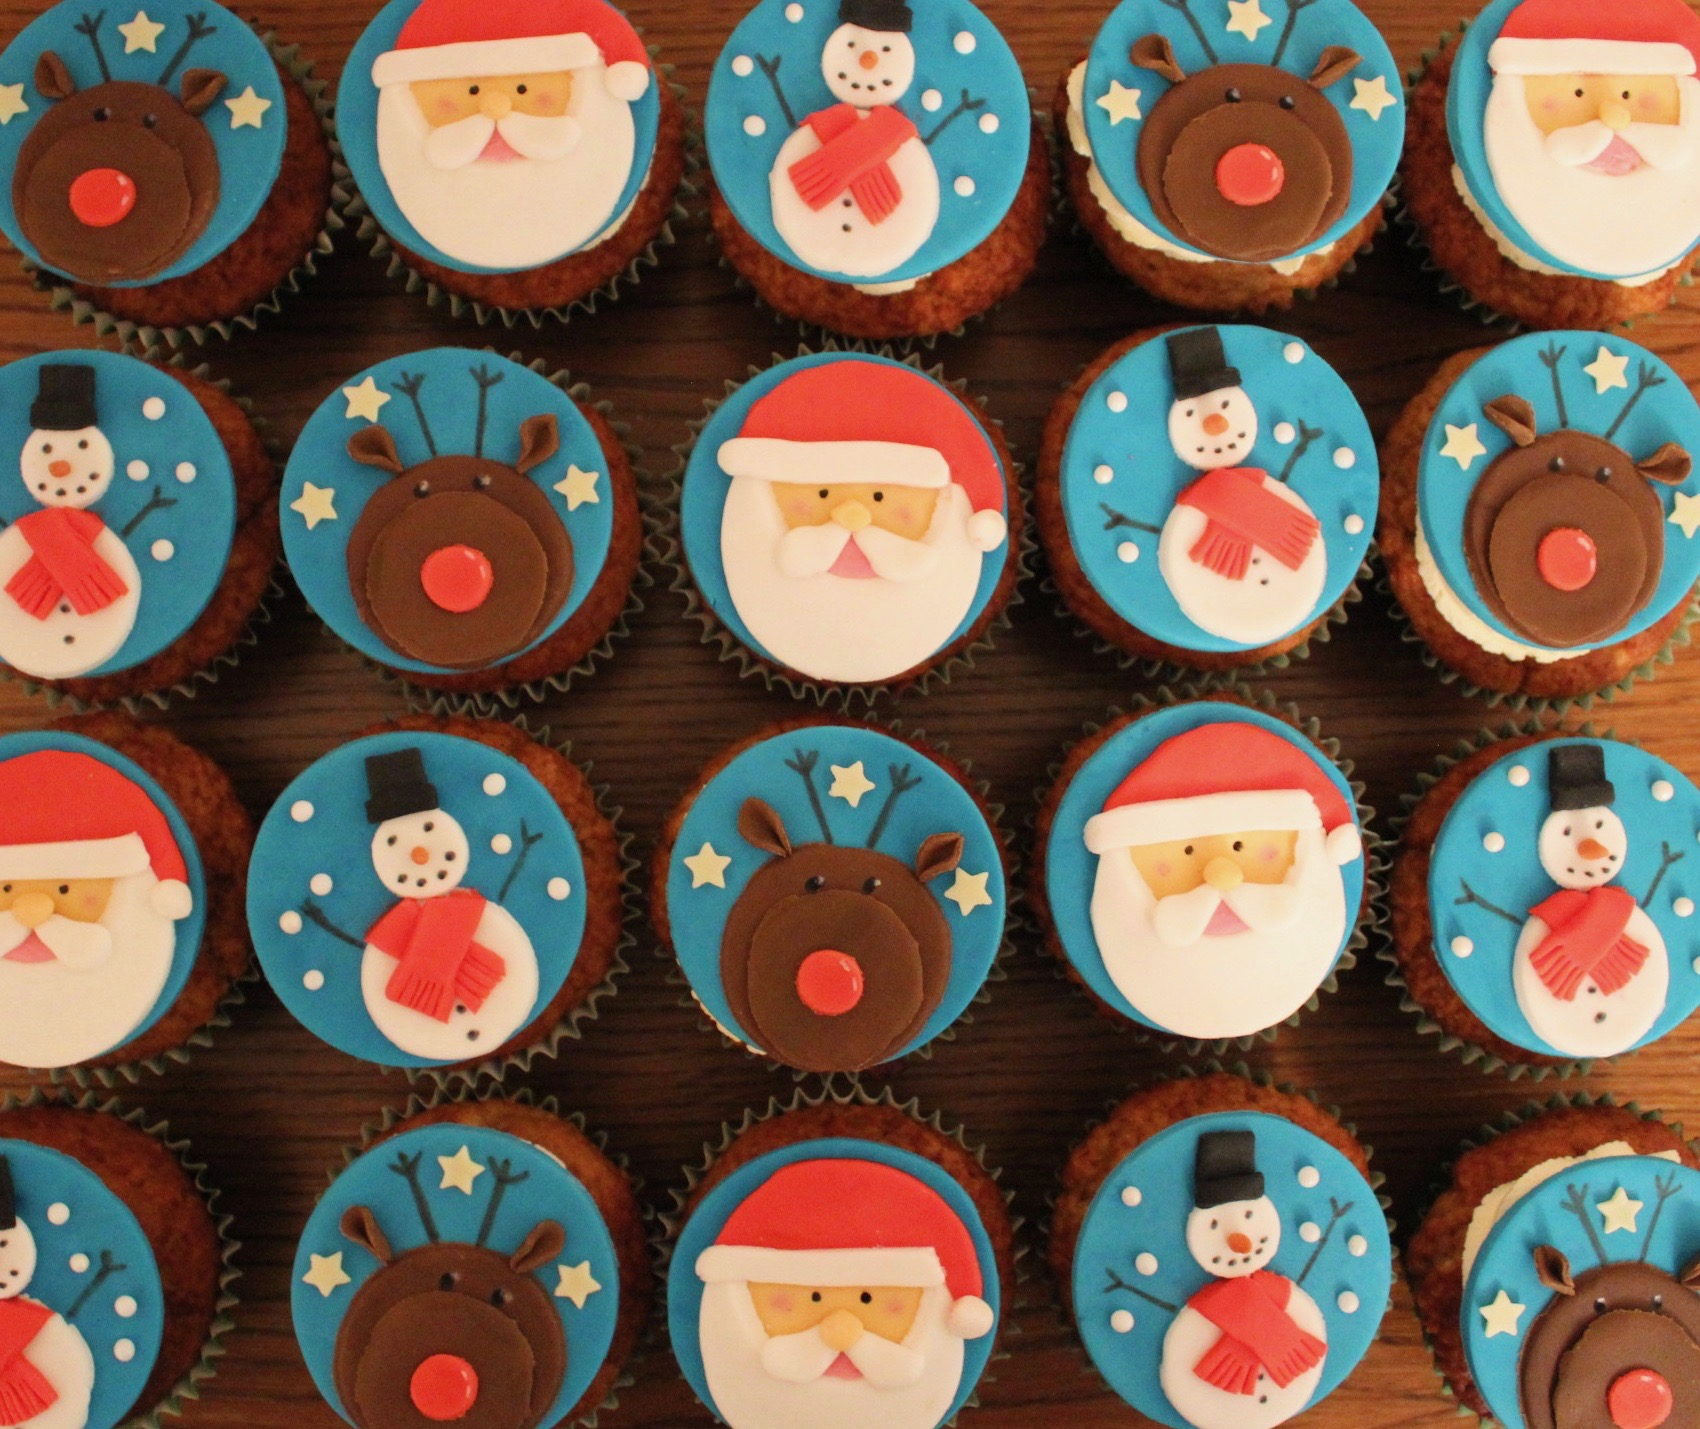 Christmas character cupcakes with Rudolph reindeer, Santa Father Christmas & Snowman